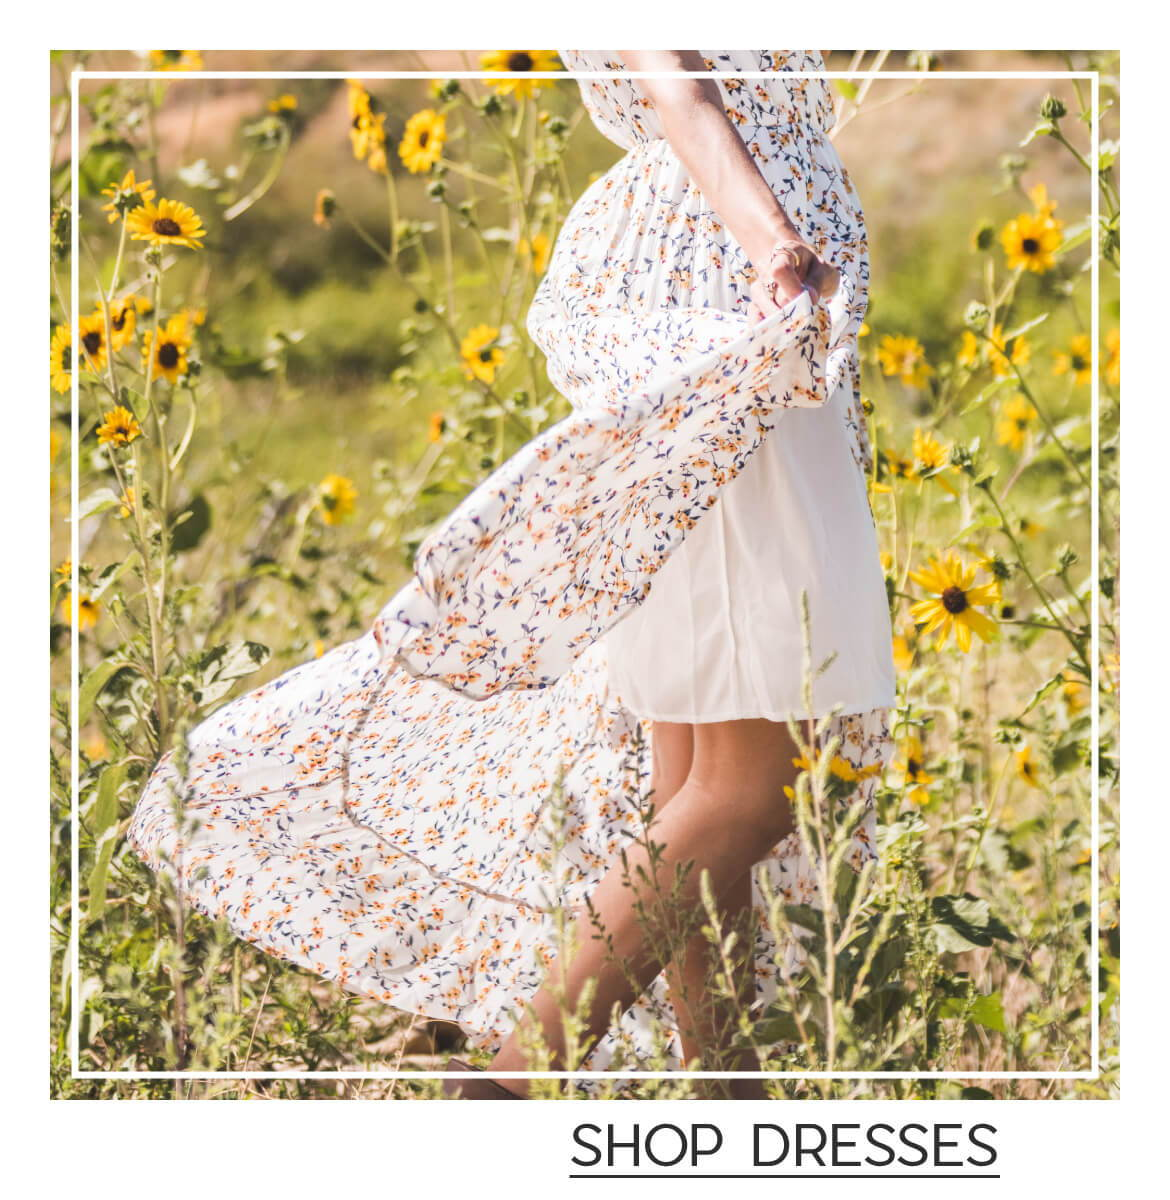 boutique dresses, skirts for women